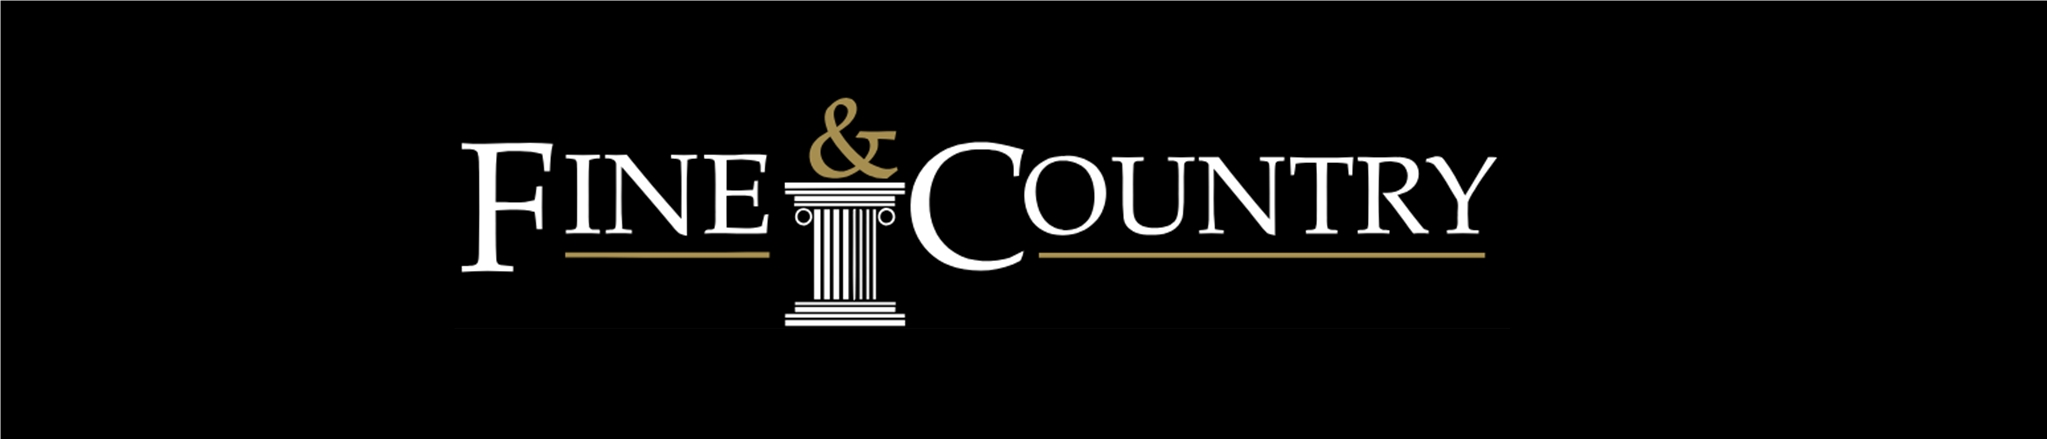 fineandcountrylogo